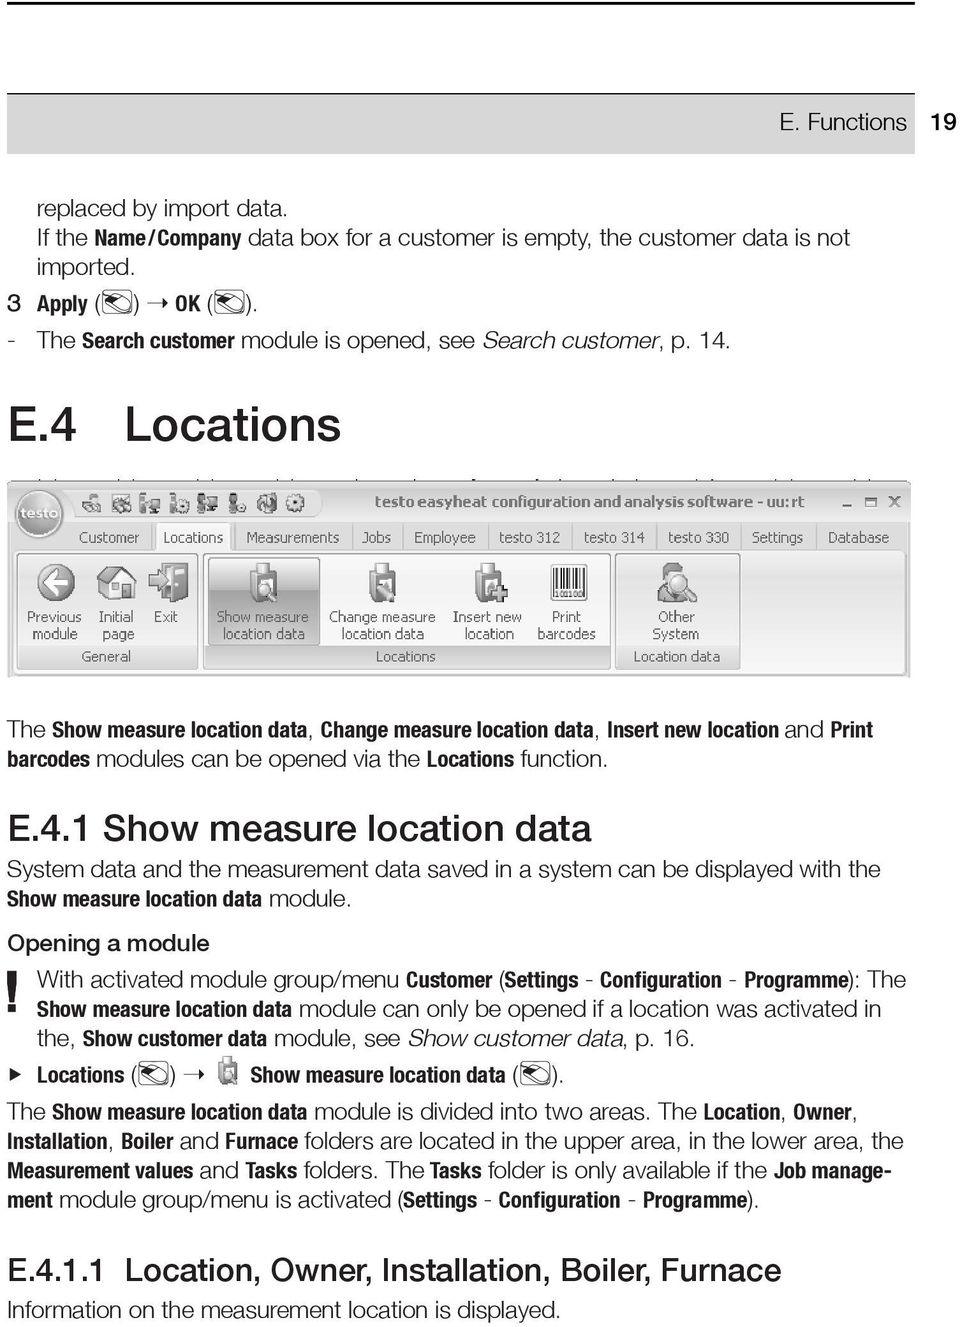 4 Locations The Show measure location data, Change measure location data, Insert new location and Print barcodes modules can be opened via the Locations function. E.4.1 Show measure location data System data and the measurement data saved in a system can be displayed with the Show measure location data module.